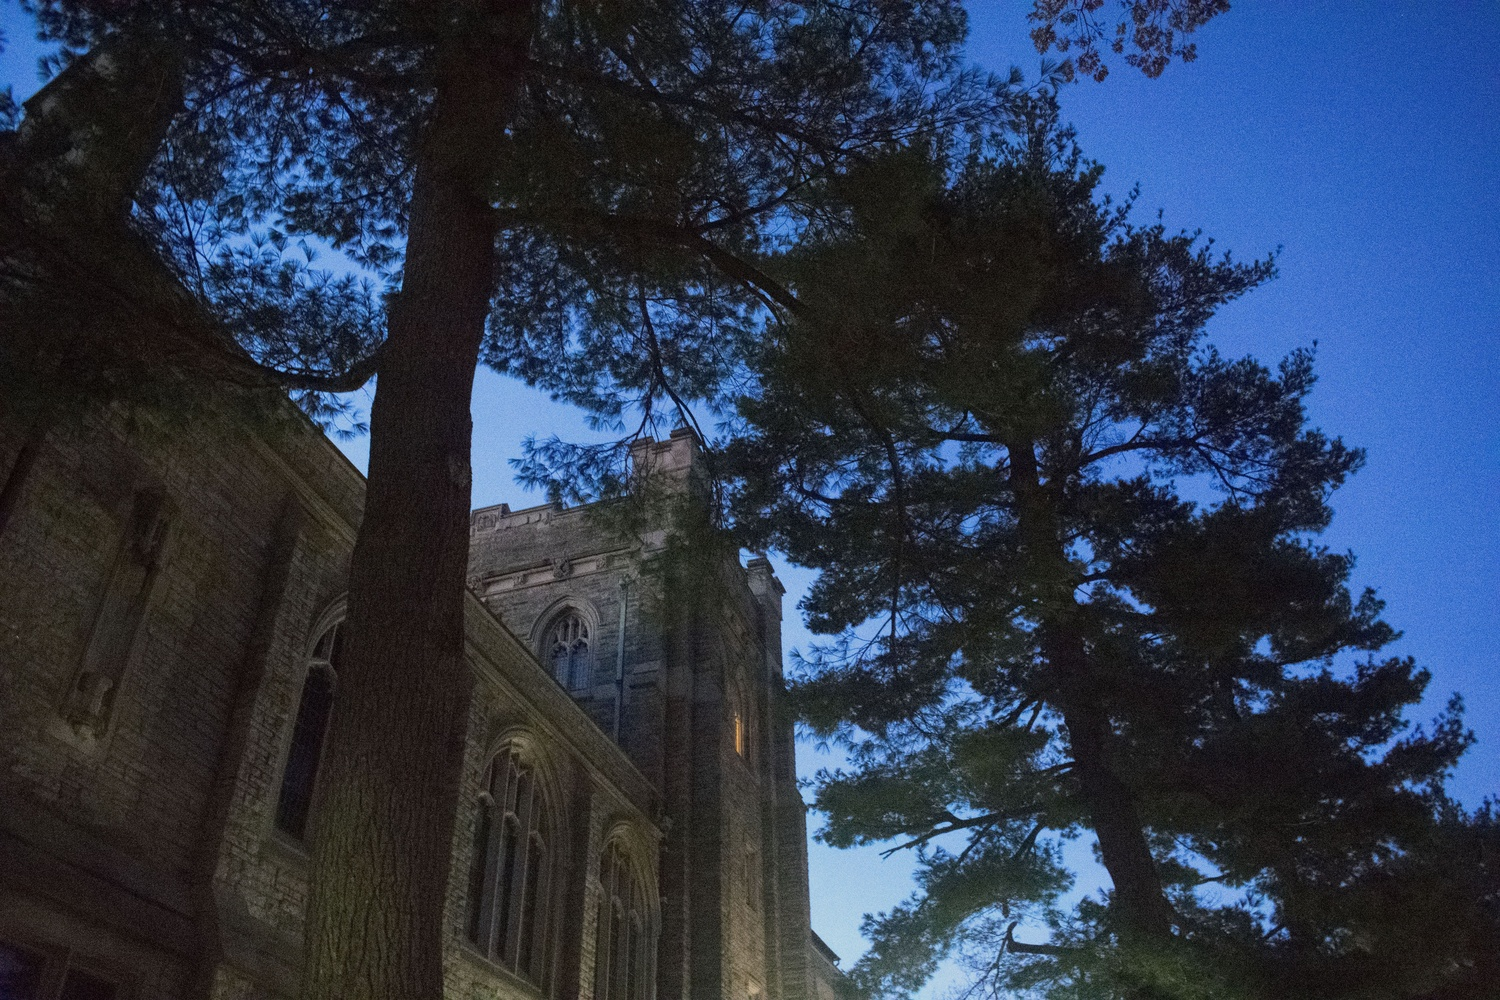 Administrators plan to fell a century-old red oak tree on the Divinity School's campus as part of planned renovations to Andover Hall. Some students are outraged.